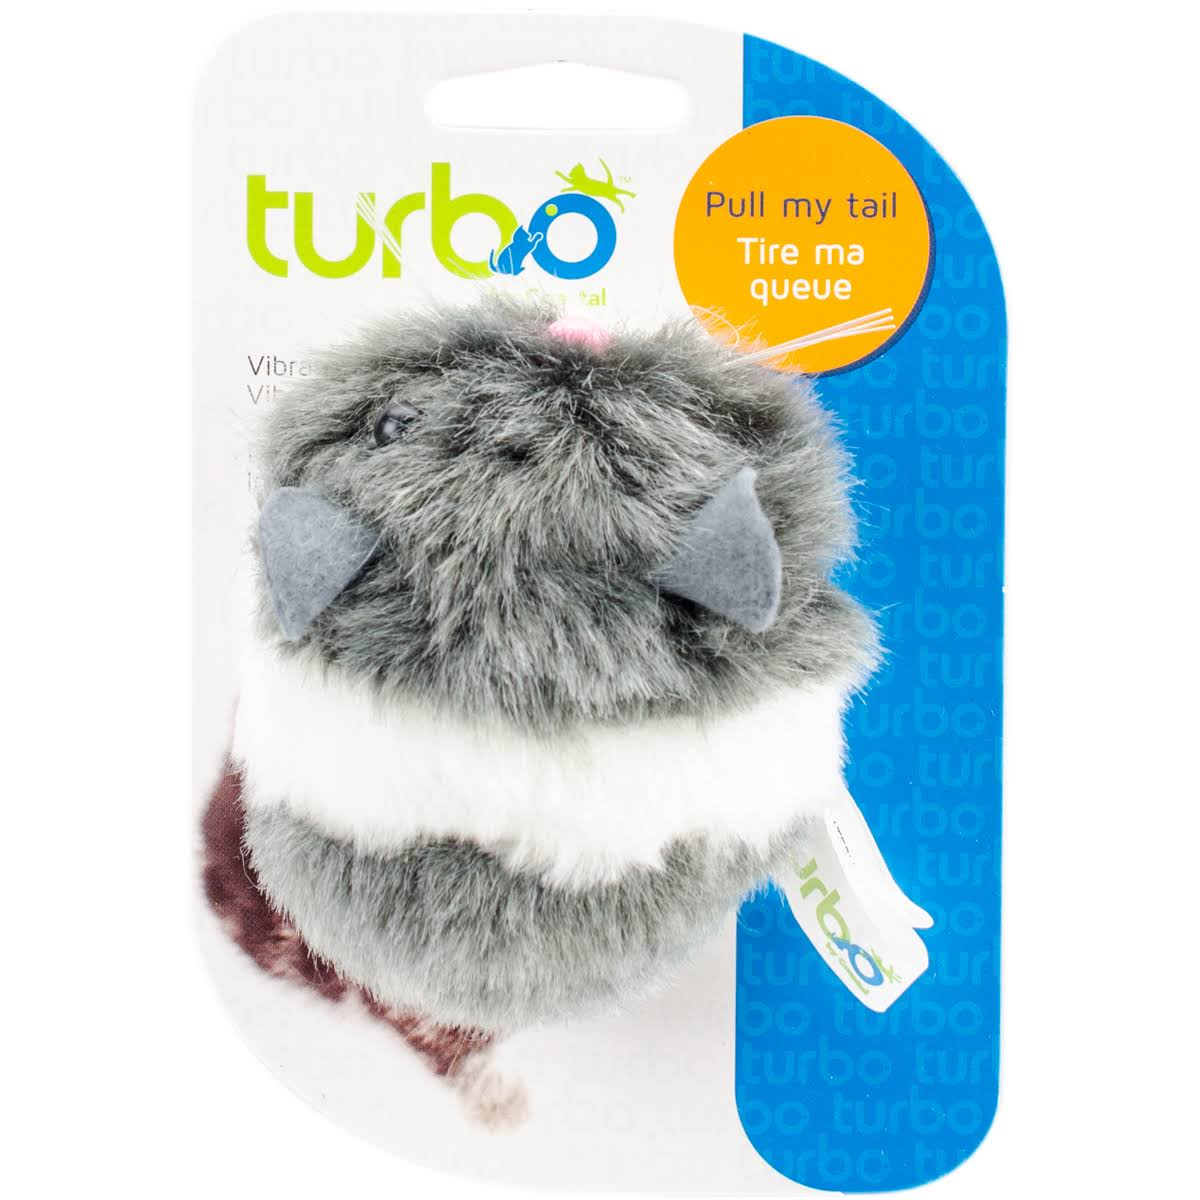 Coastal Turbo Vibrating Cat Toy - Mouse, 3.5""